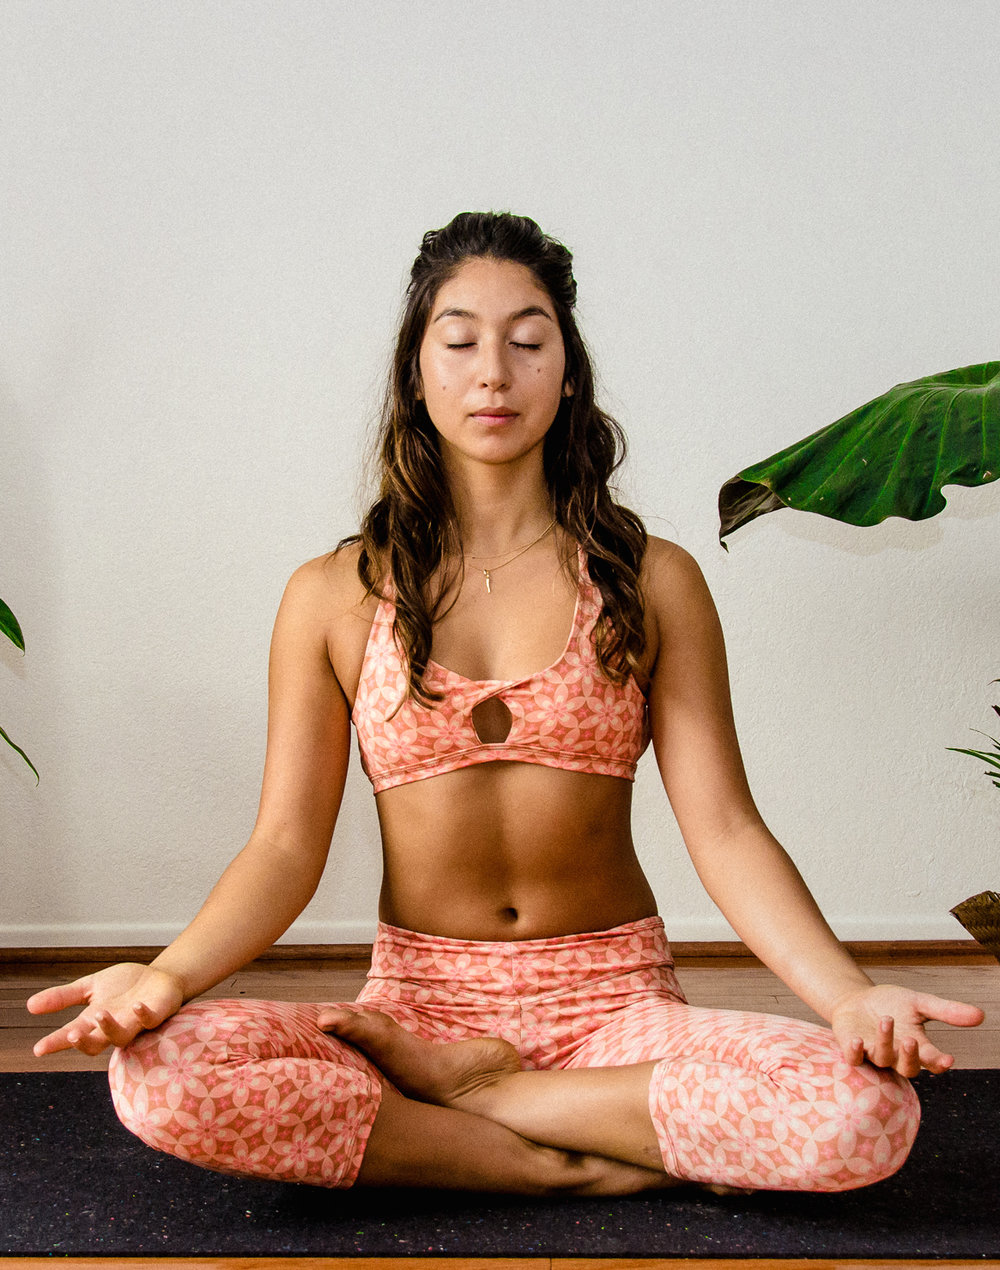 Santa Barbara Yoga Photographer Miranda Kelton Laura Goe Psychedelic Honey-35.jpg